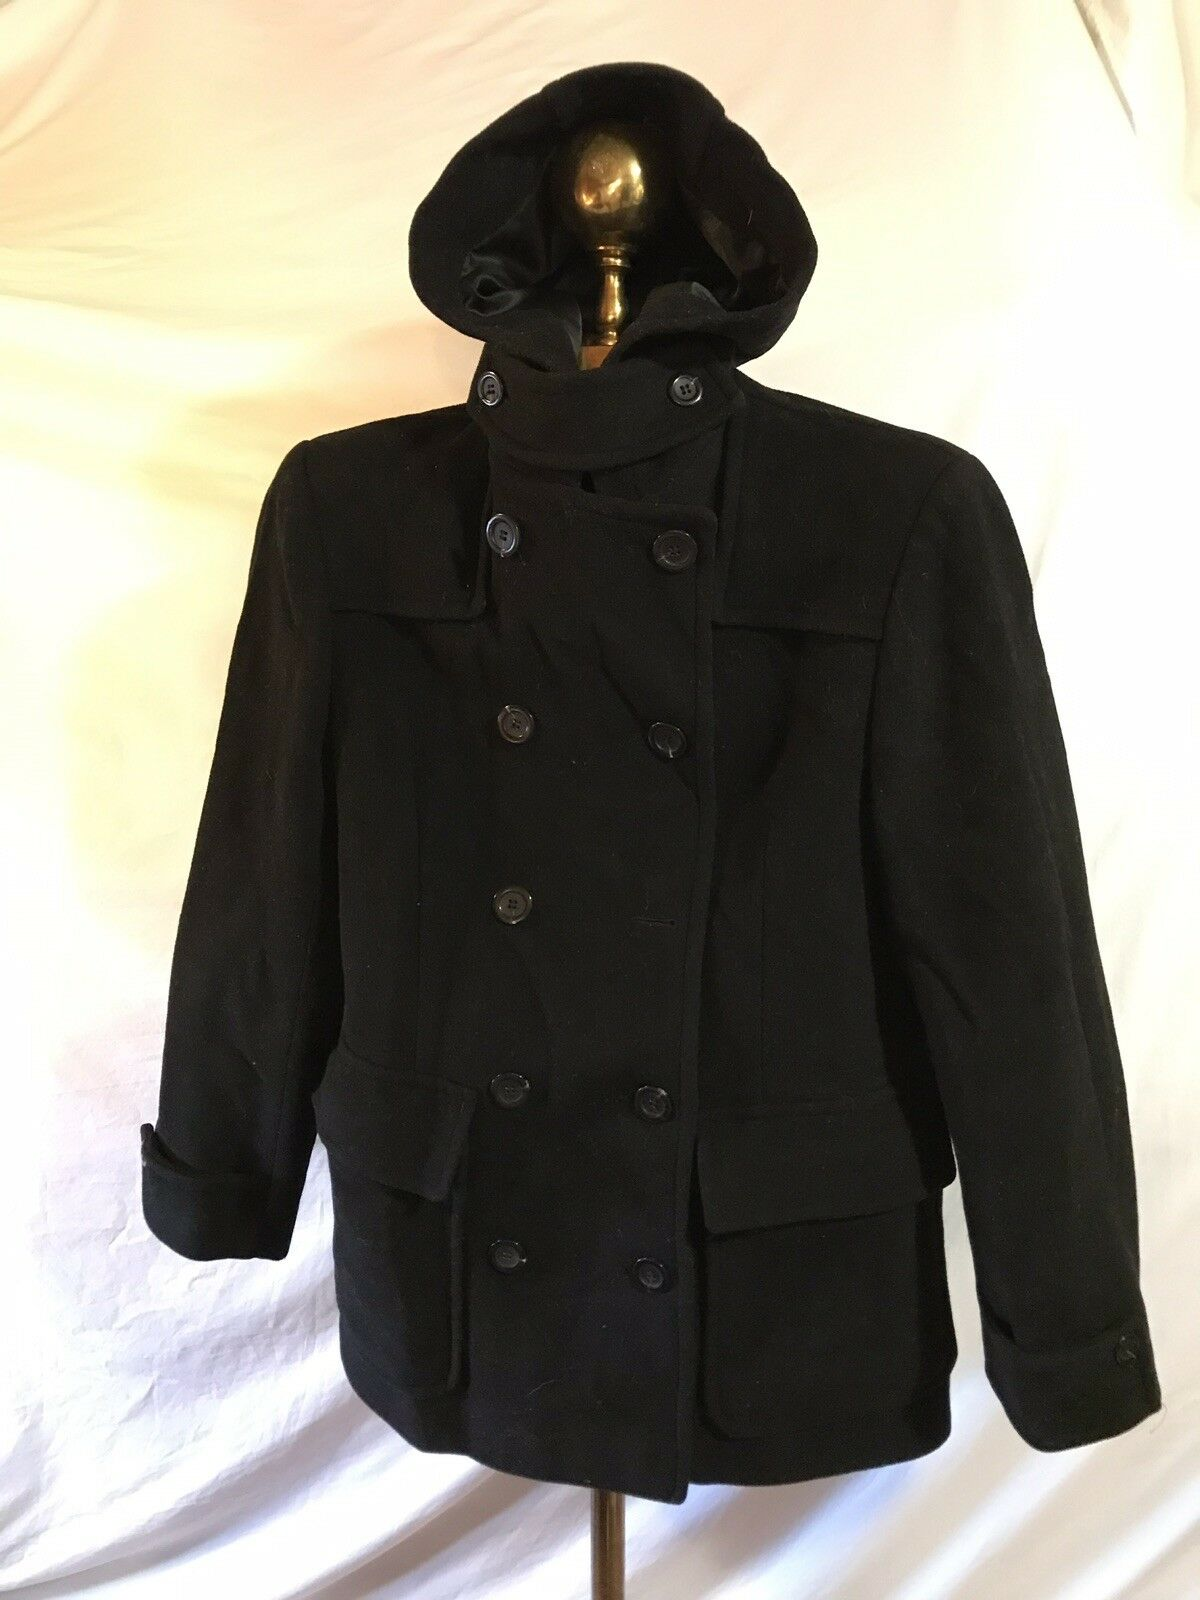 Vintage DKNY Women's Coat Size 4 Made in